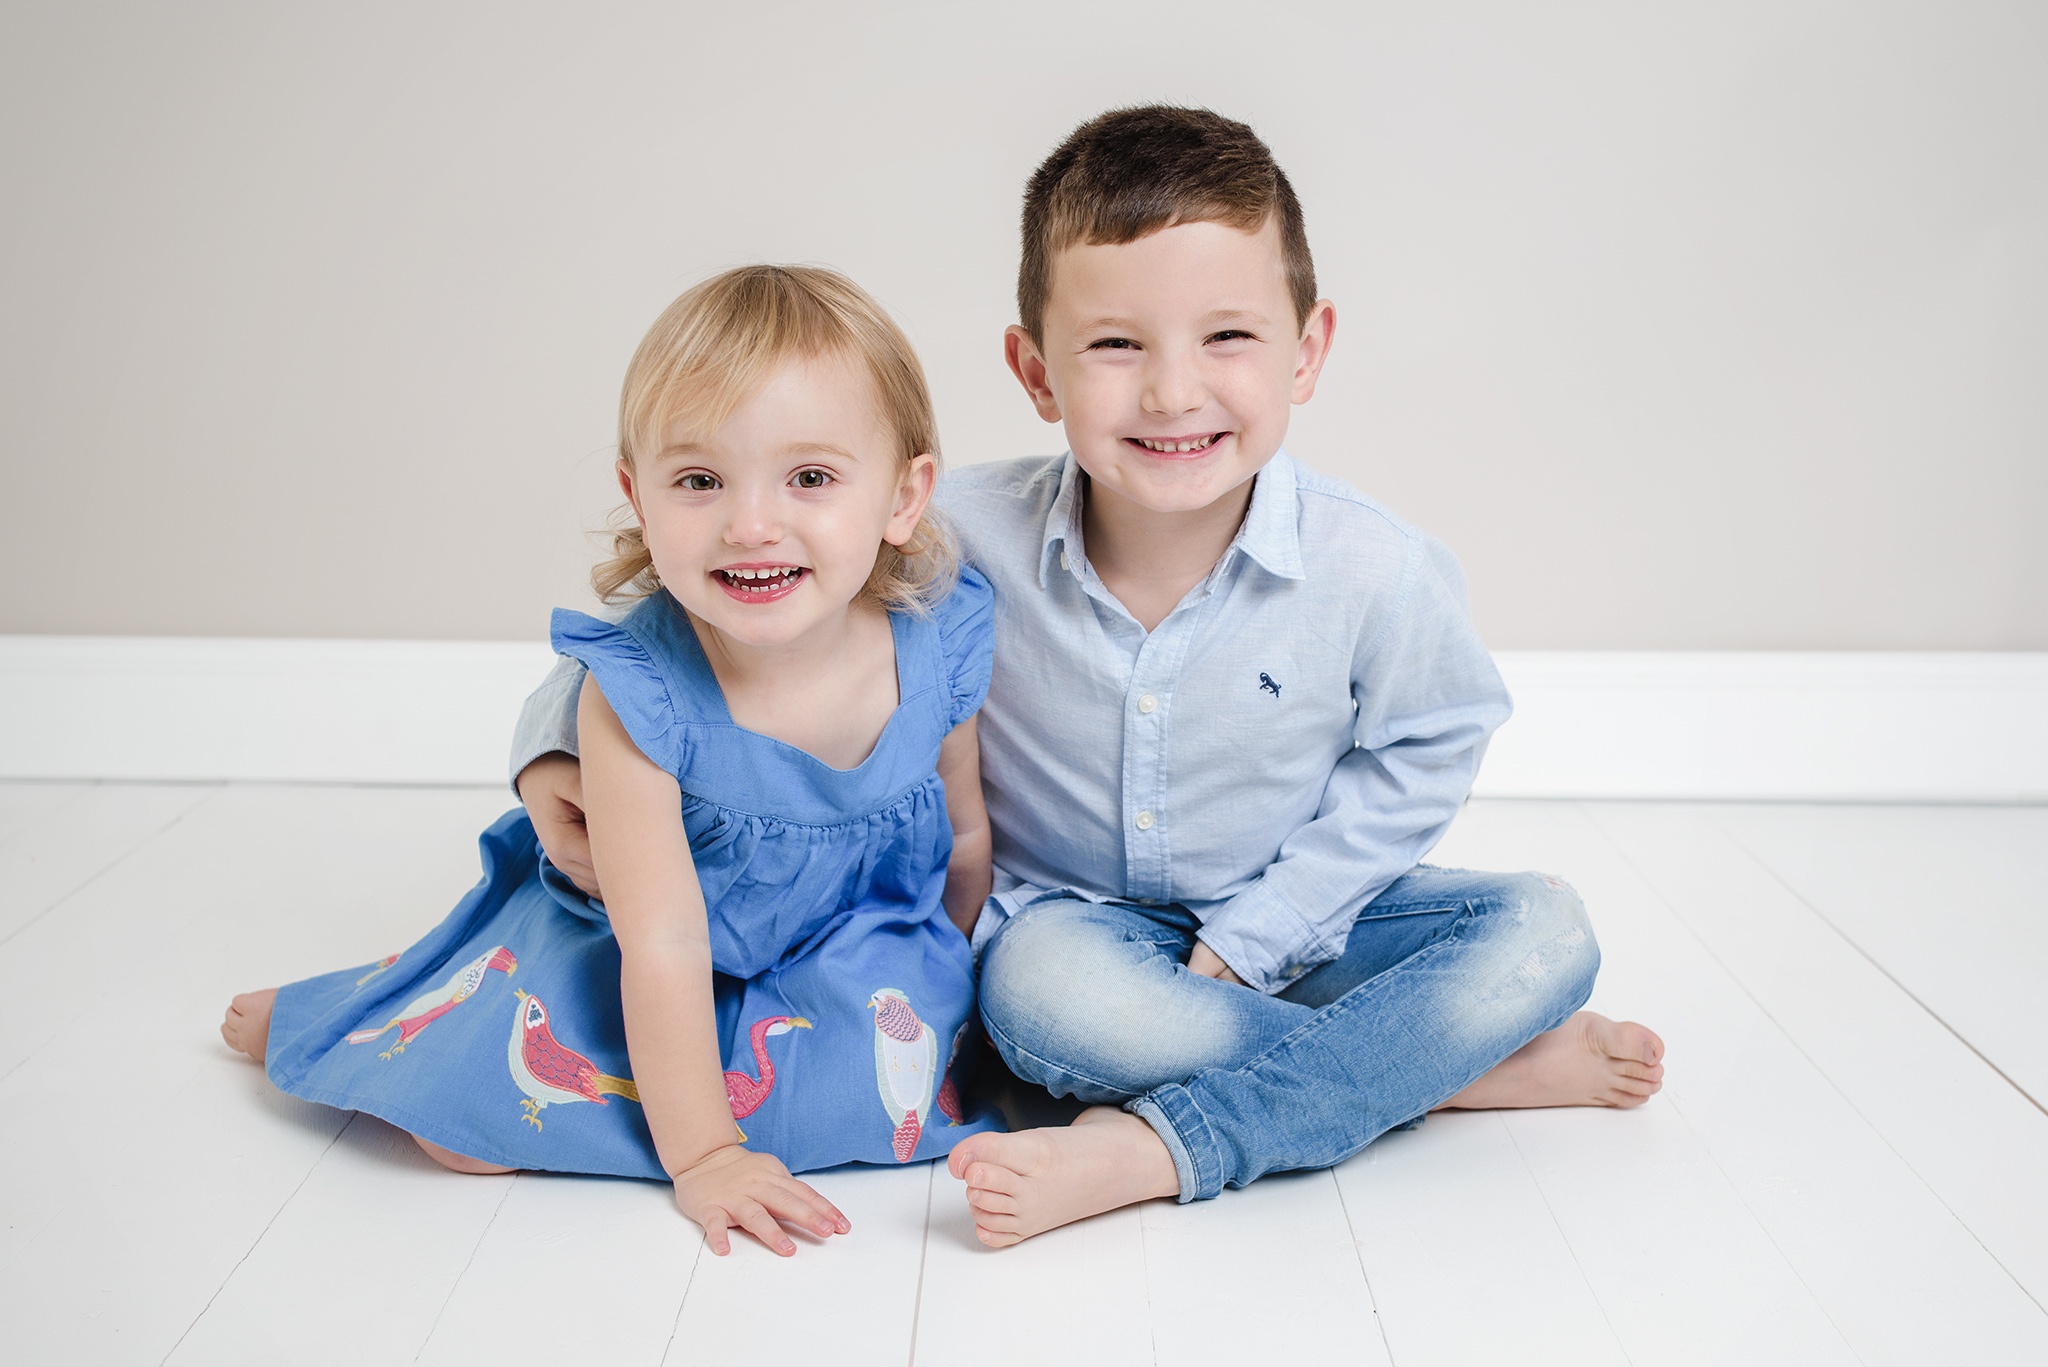 little brother and sister with cheeky smiles to camera | Children's Photographer Aylesbury Buckinghamshire and Thame Oxfordshire